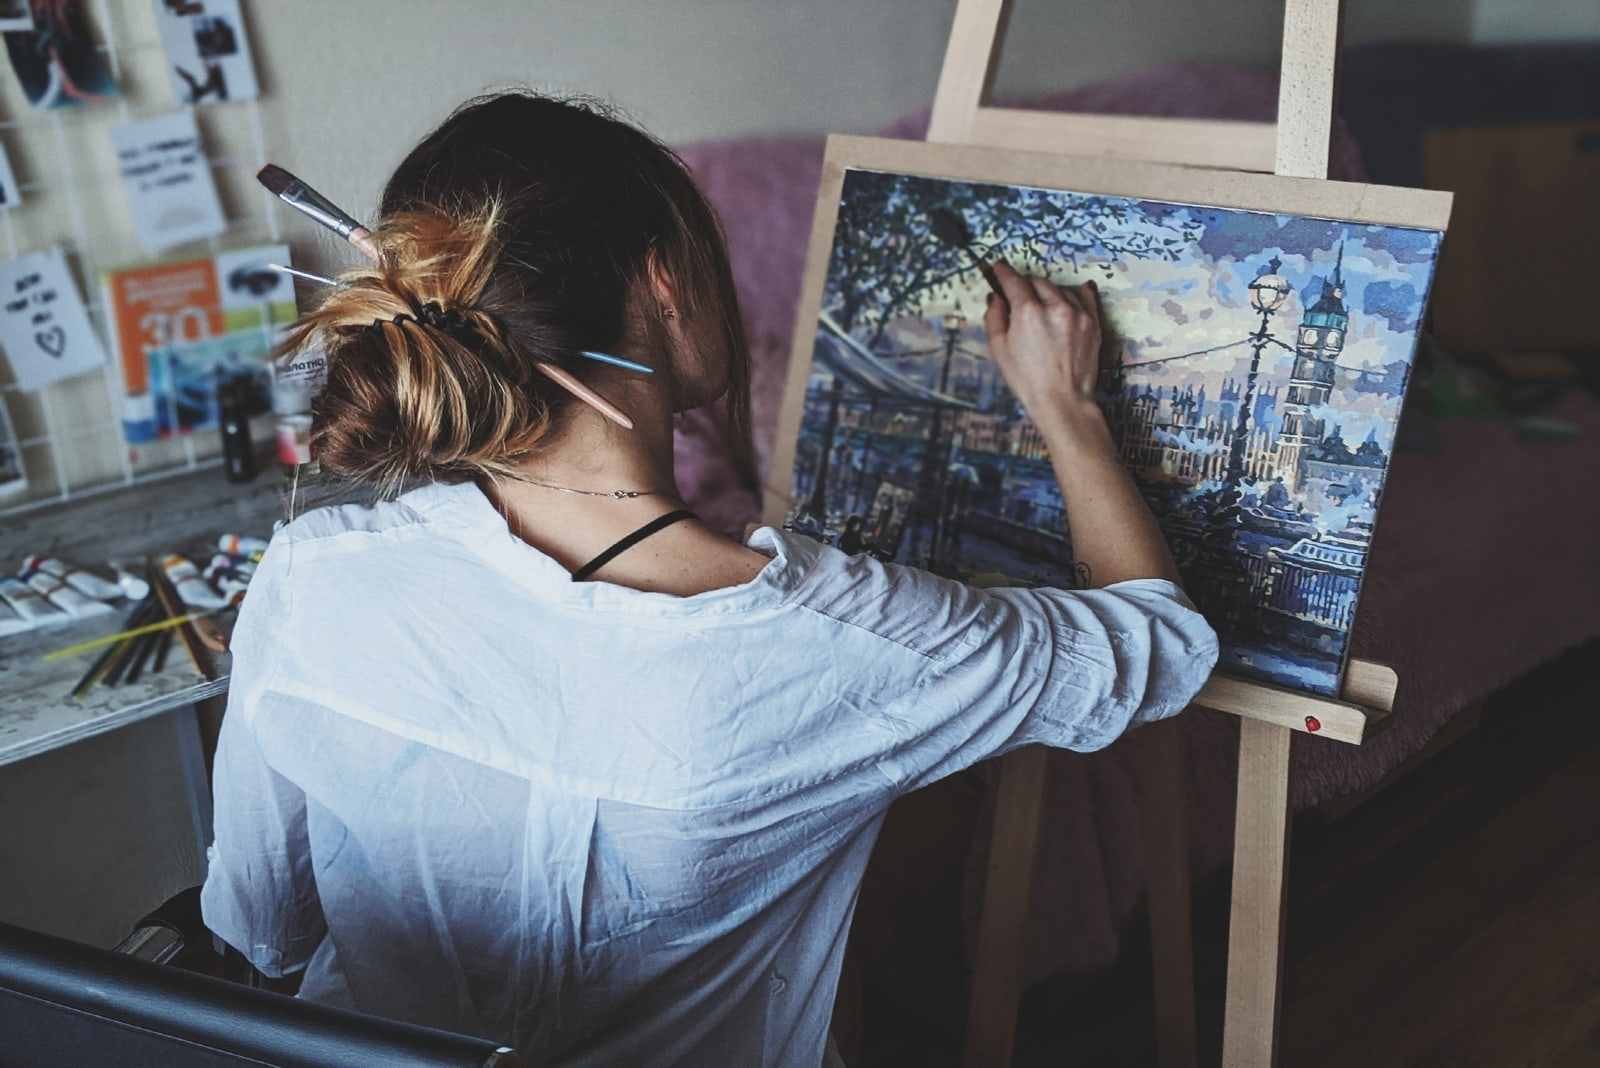 woman in white shirt painting indoor